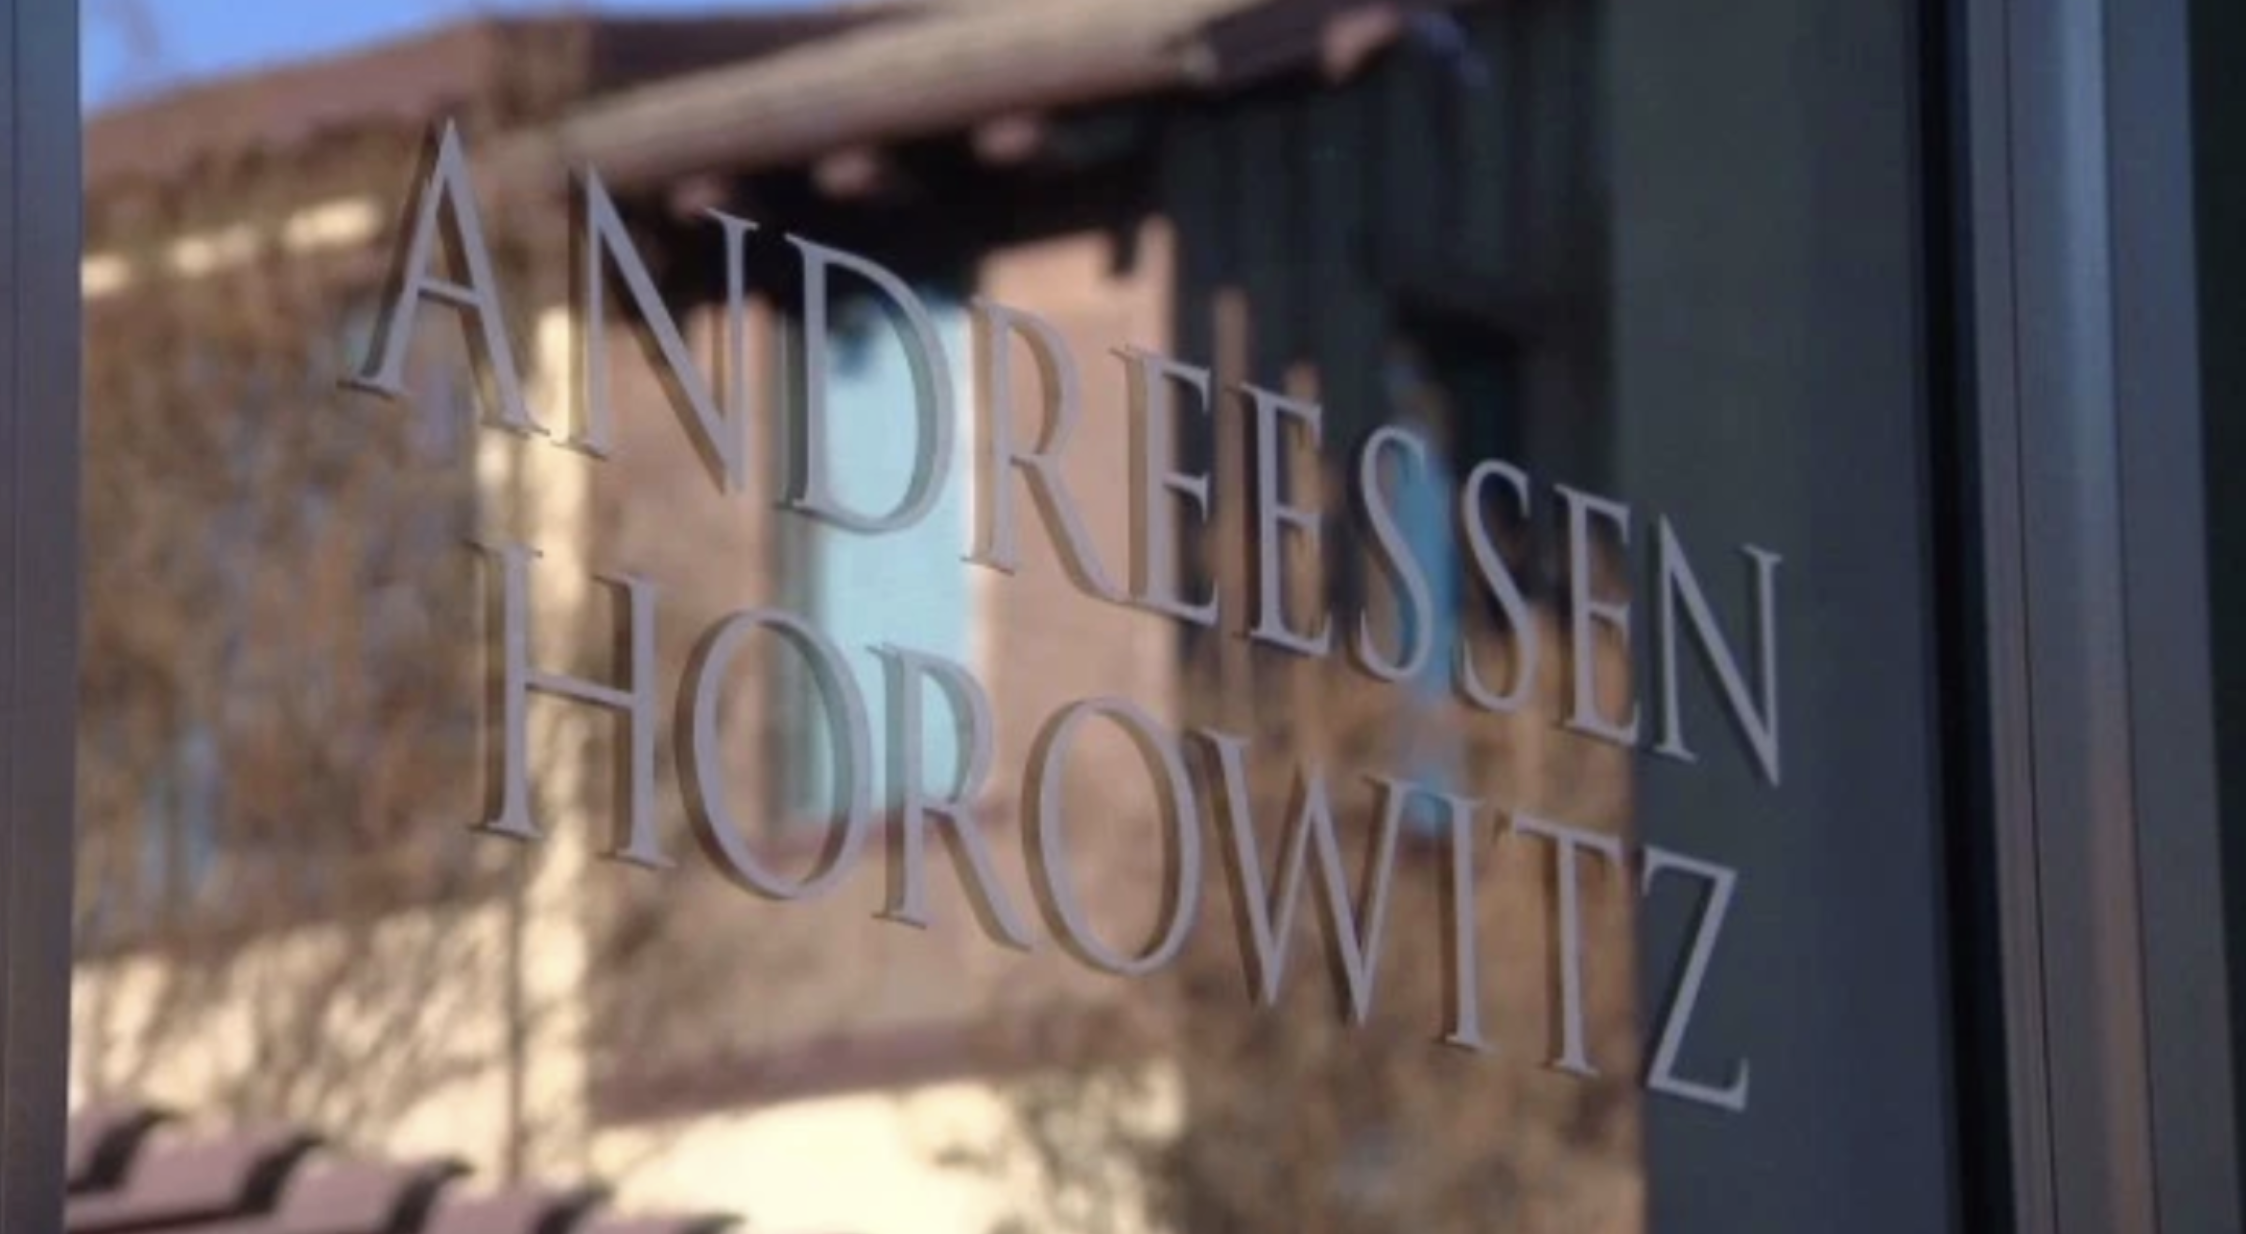 Andreessen Horowitz isn't alone in leaving behind VC as we know it